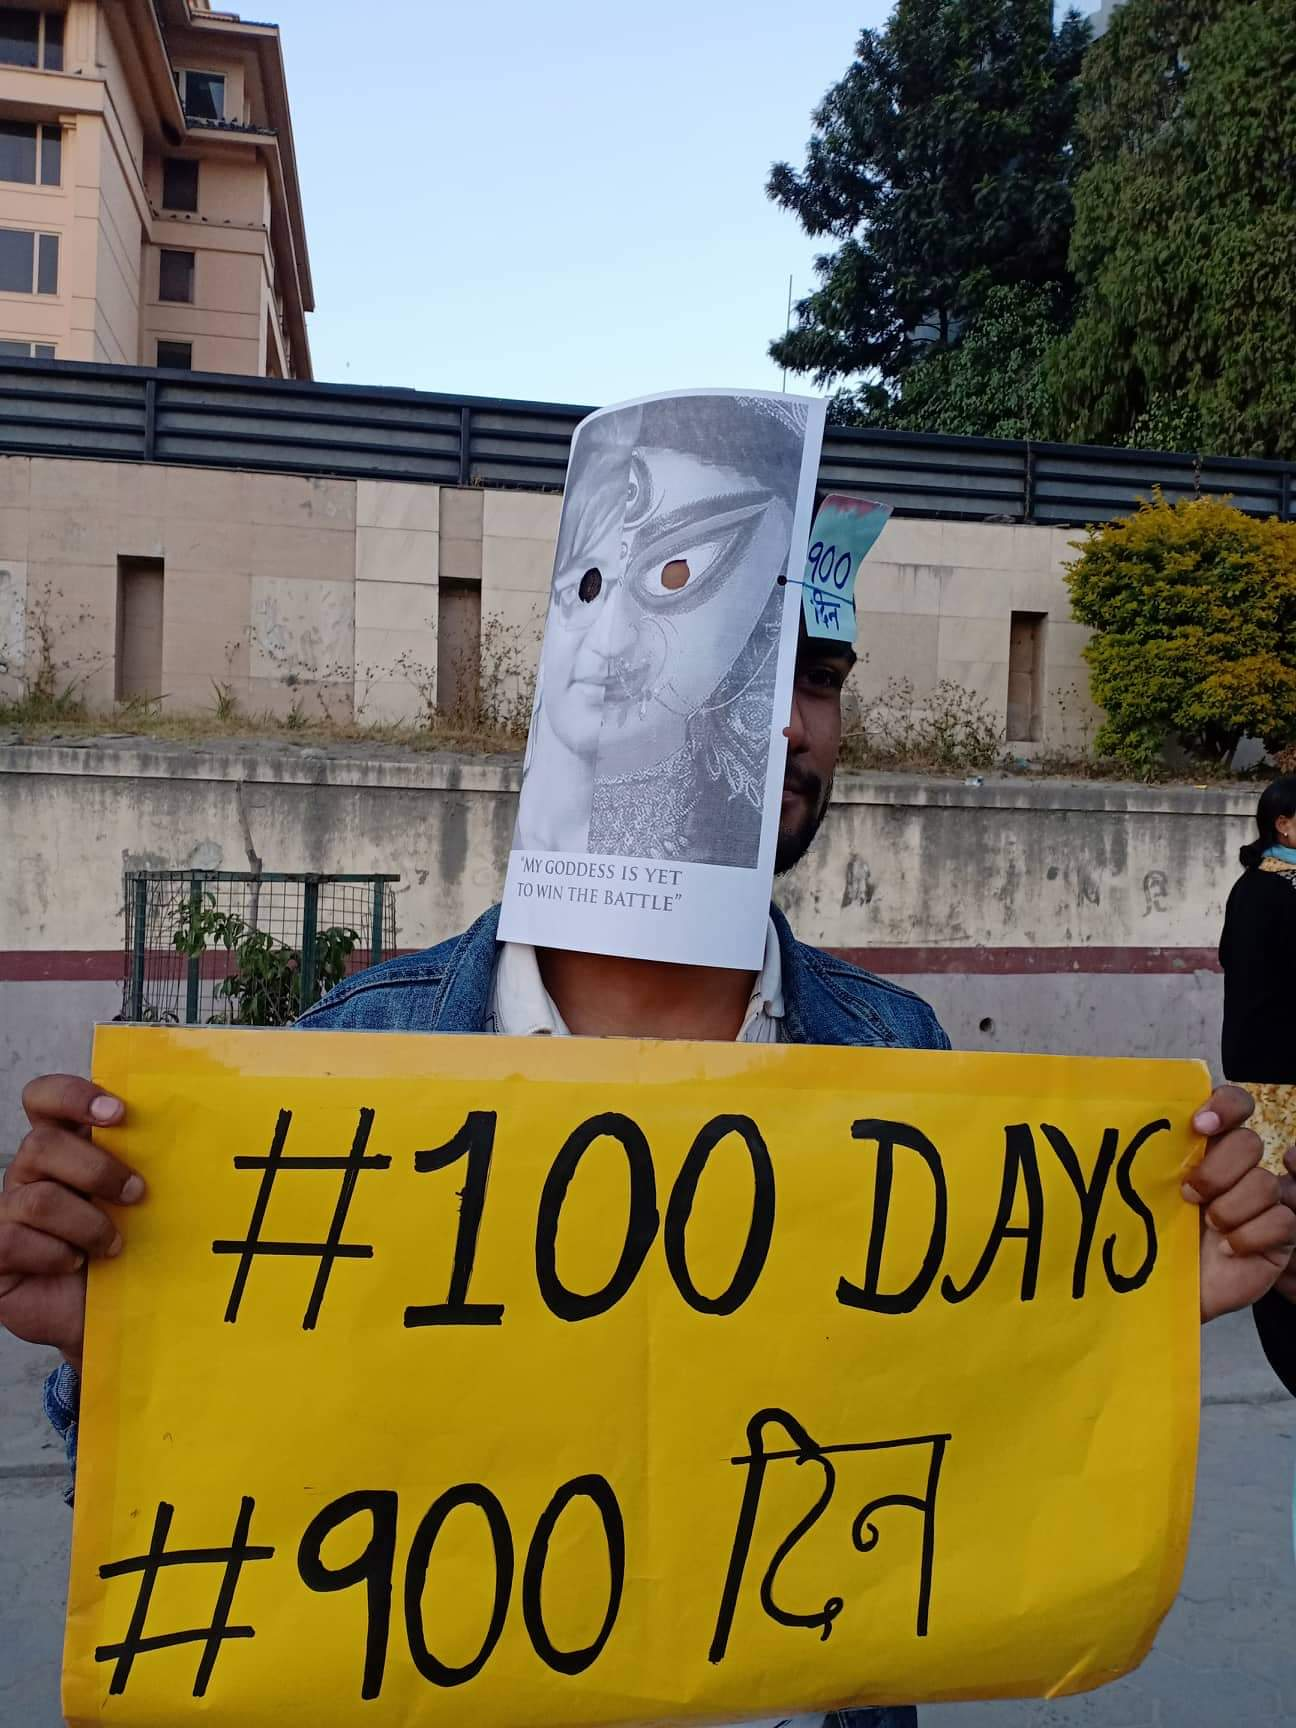 A rally participant donning Nirmala's 'mask', implying oneness at the protest programme organised today at New Baneshwar. Photo: Bijay Shiwakoti